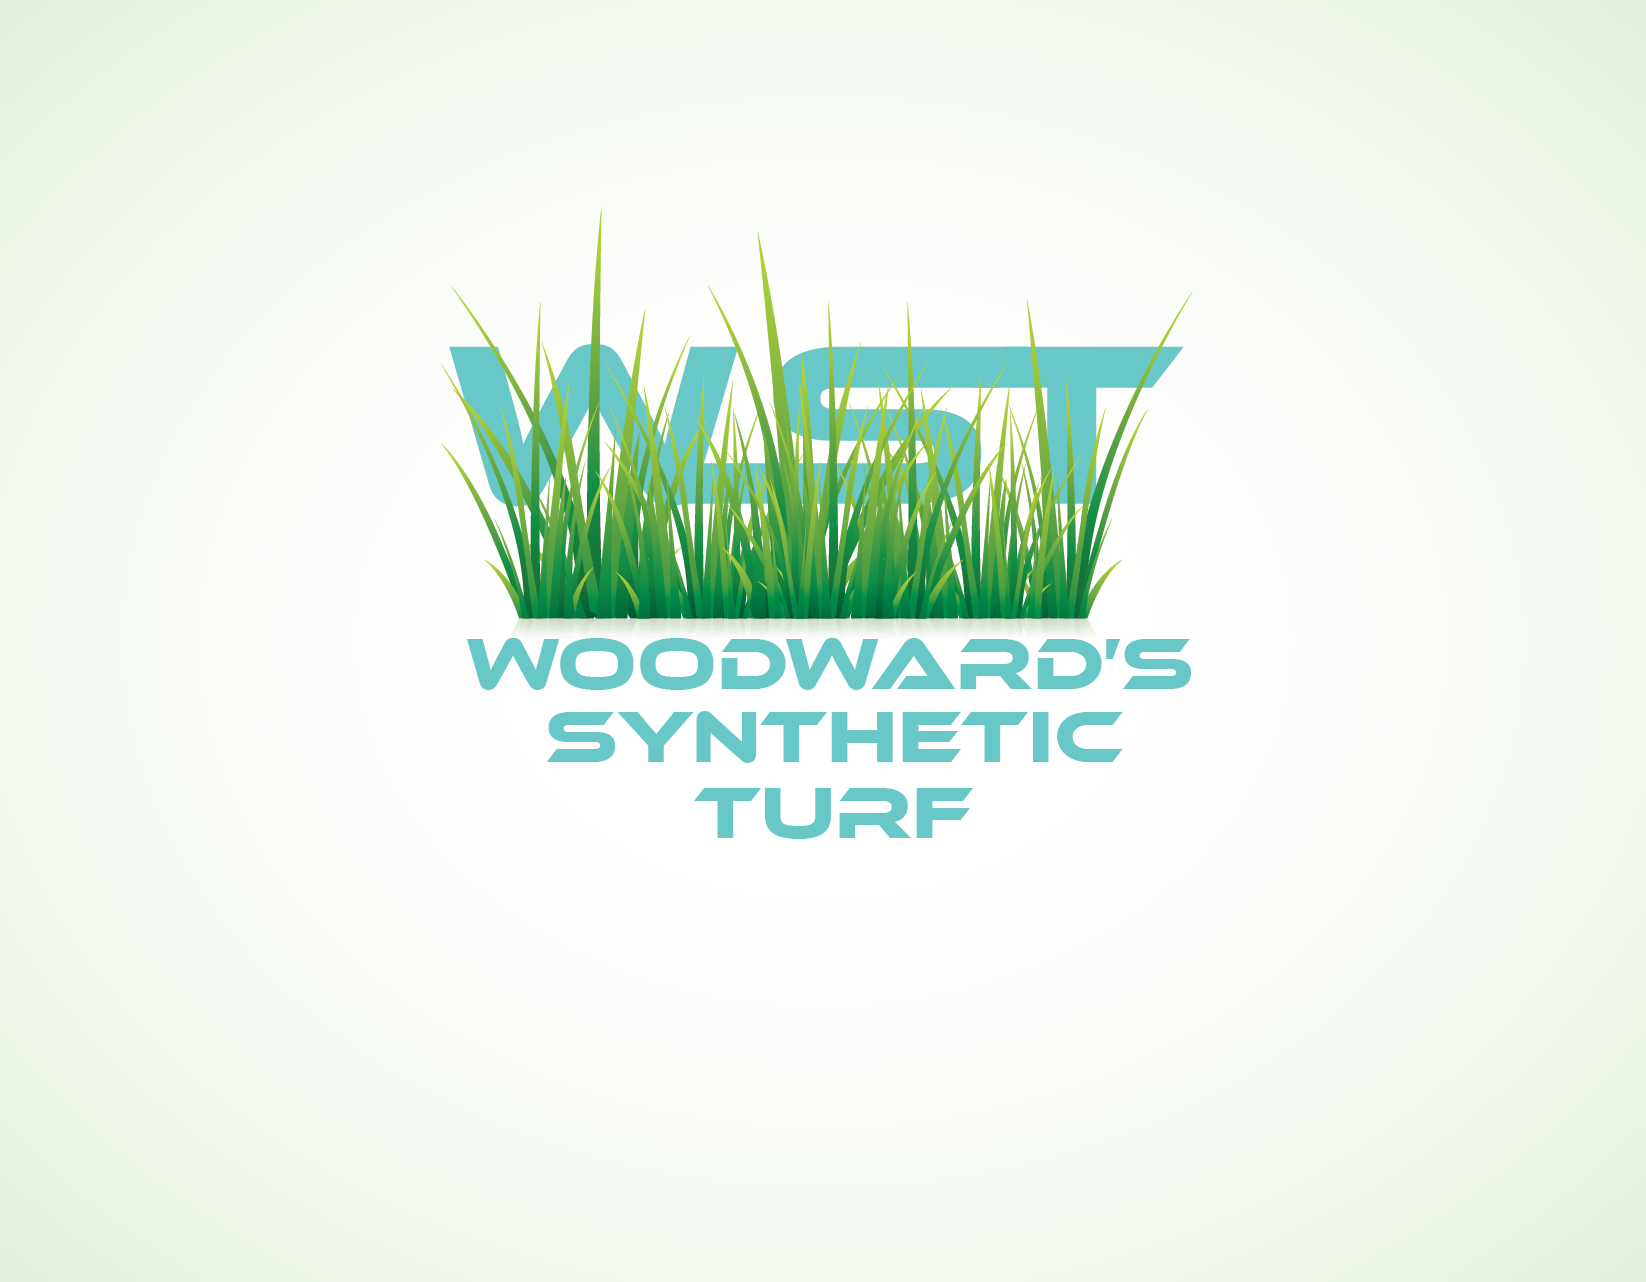 Logo Design by Umair ahmed Iqbal - Entry No. 85 in the Logo Design Contest Artistic Logo Design for Woodward's Synthetic Turf.